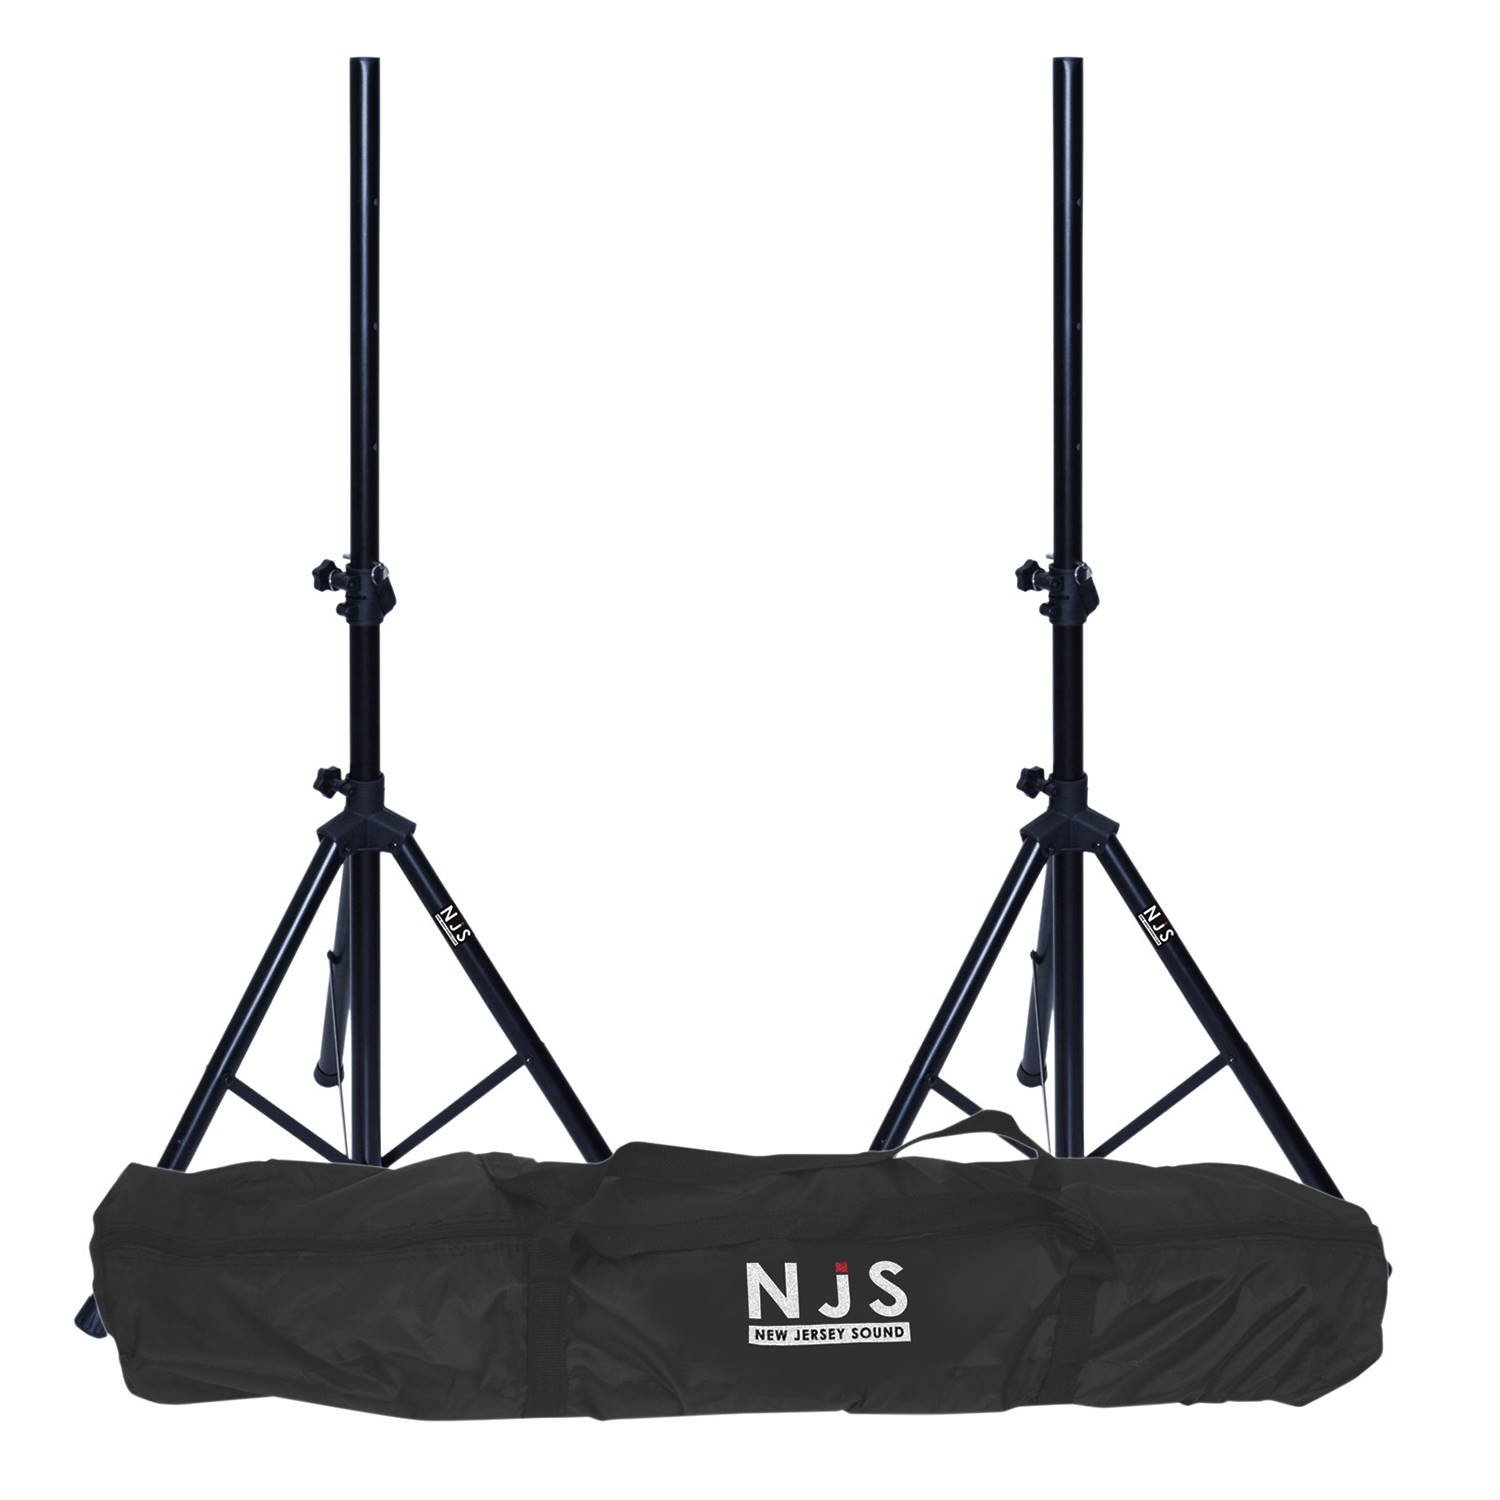 Kit de 2 pieds d'enceintes 35mm charge max 45 kg + sac de transport NJS063DE New Jersey Sound